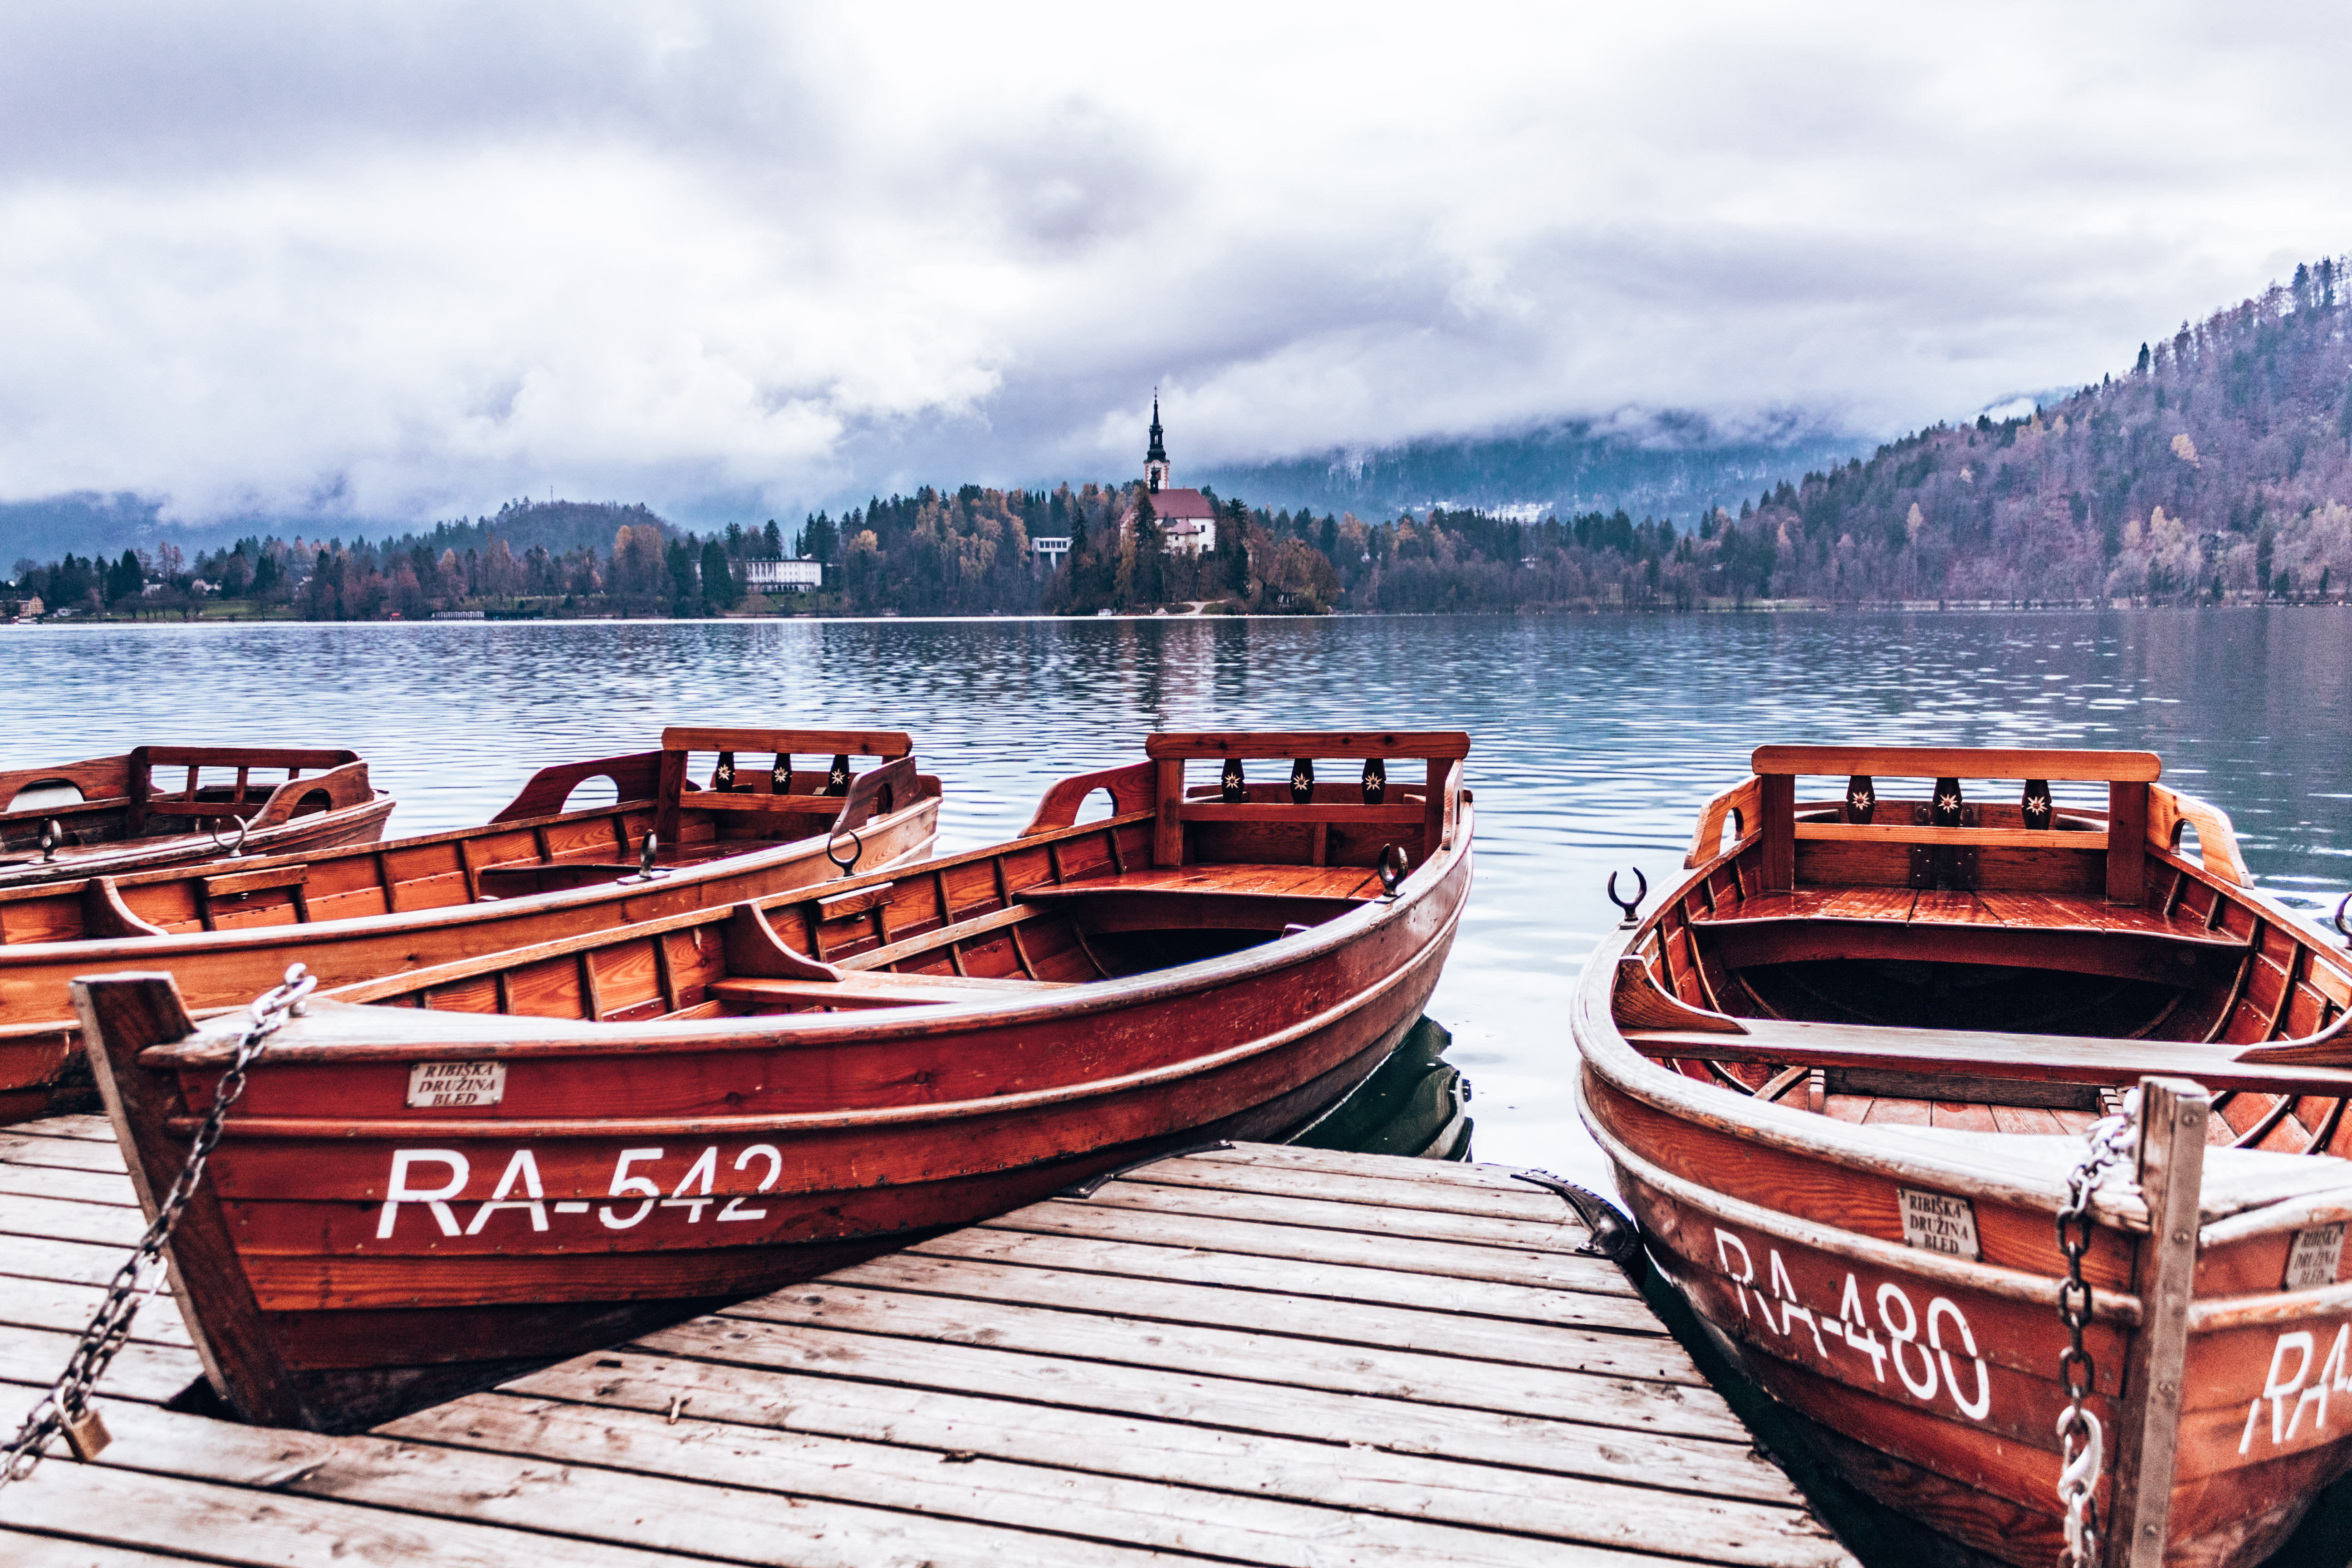 Wooden boats to bring you to the Pilgrimage Church of the Assumption of Maria at Lake Bled, Slovenia